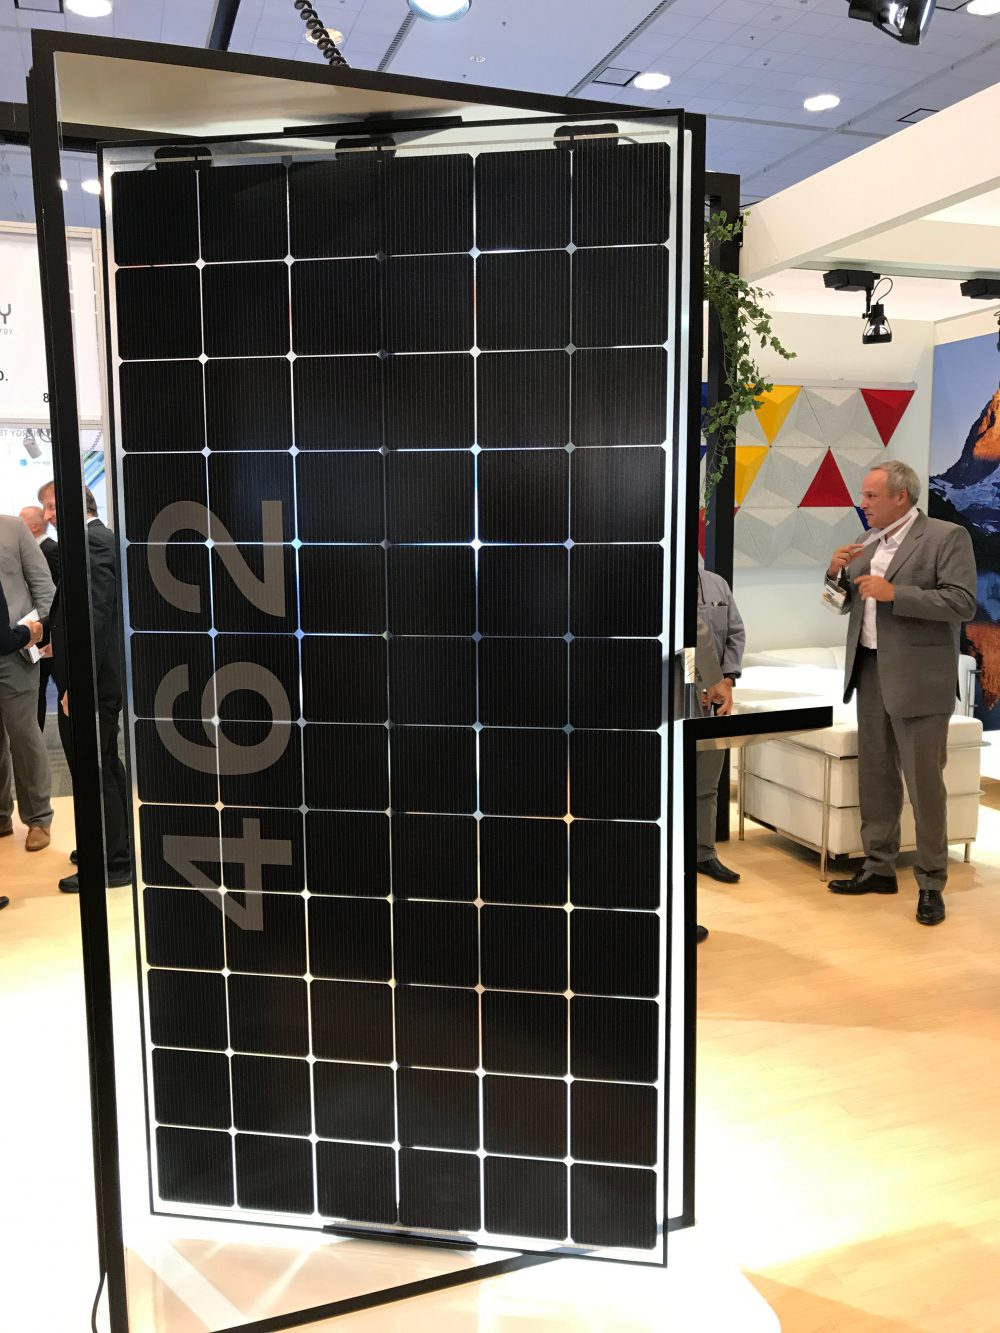 Florida Company Using Solar Cell Of The Future To Develop 500w Note On Panel Installation Calculation About No Panels Will Make Use Both Heterojunction Cells And Smartwire Technology While Also Replacing Standard Opaque Backsheet With Glass